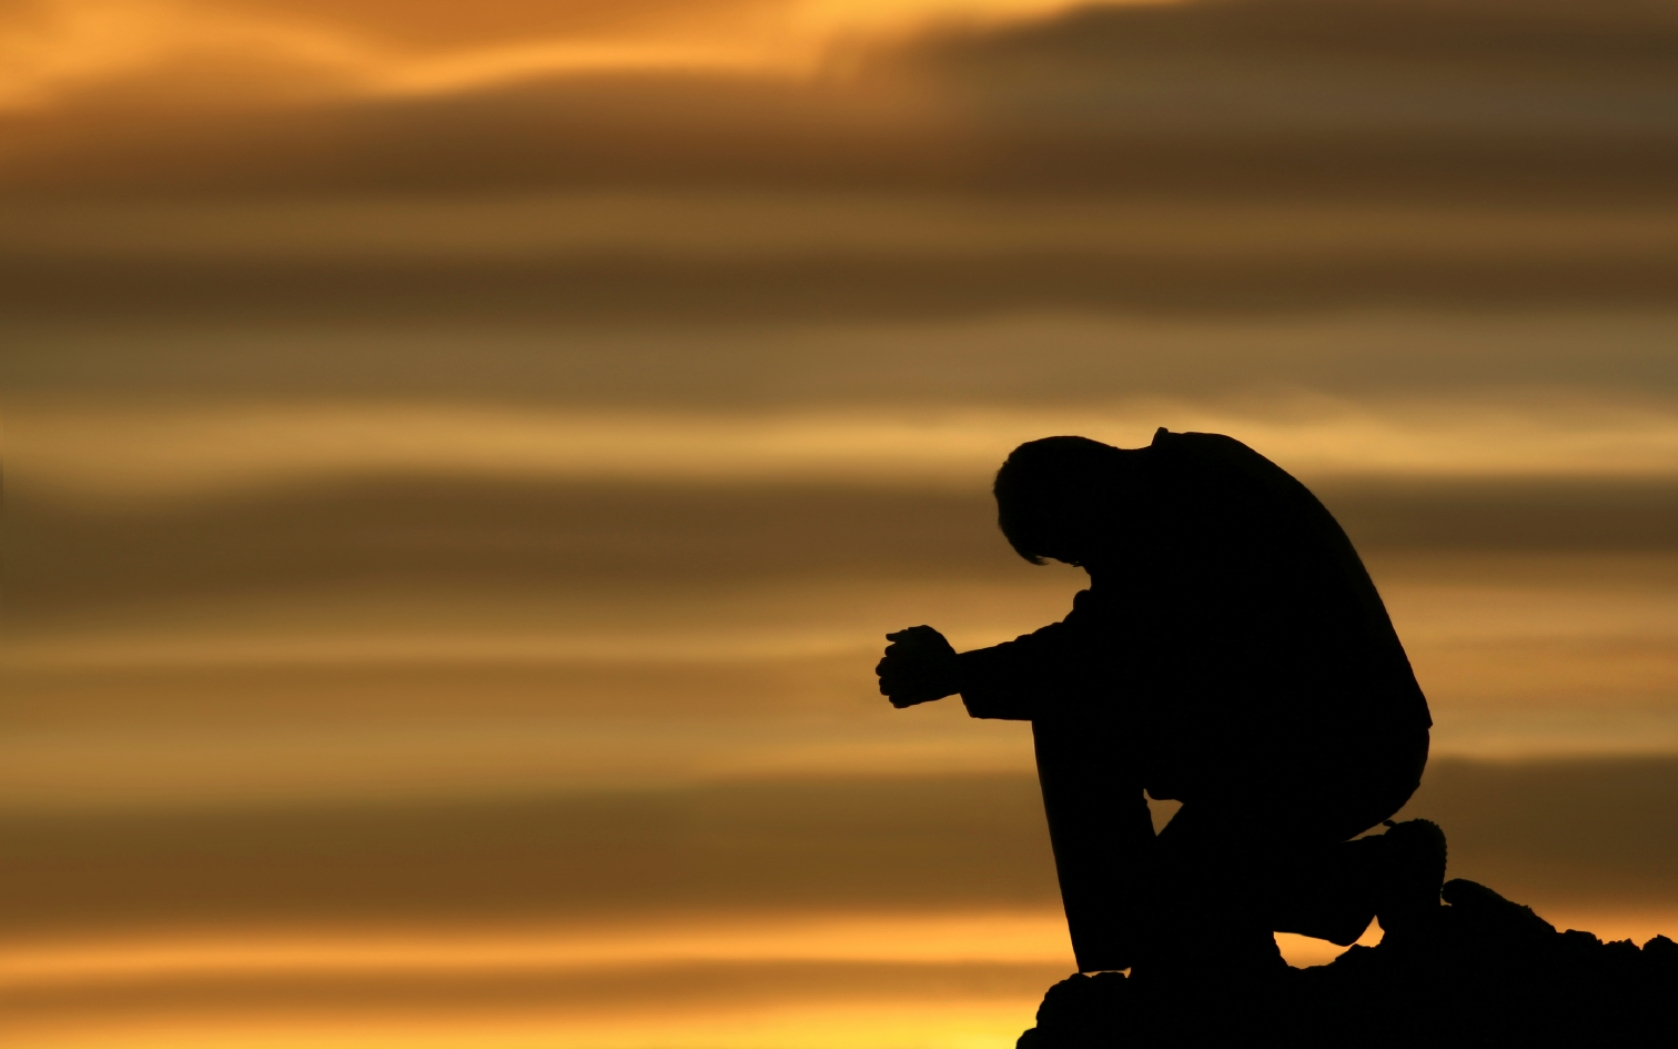 praying-and-kneeling-man.jpg